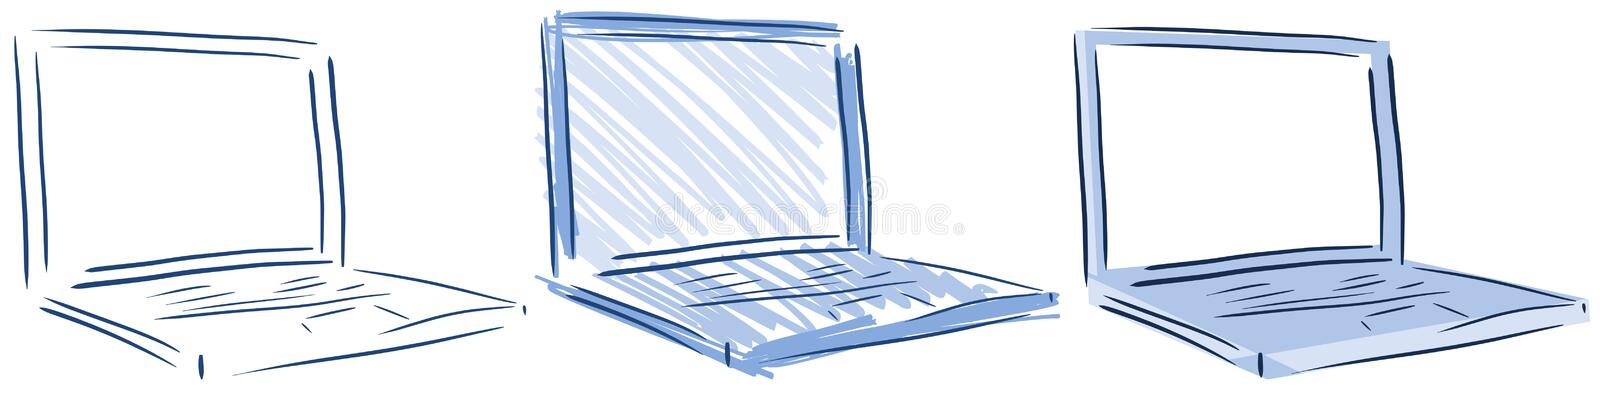 Download Isolated Computers Laptop In Blue Tones Stock Illustration - Image: 42958093